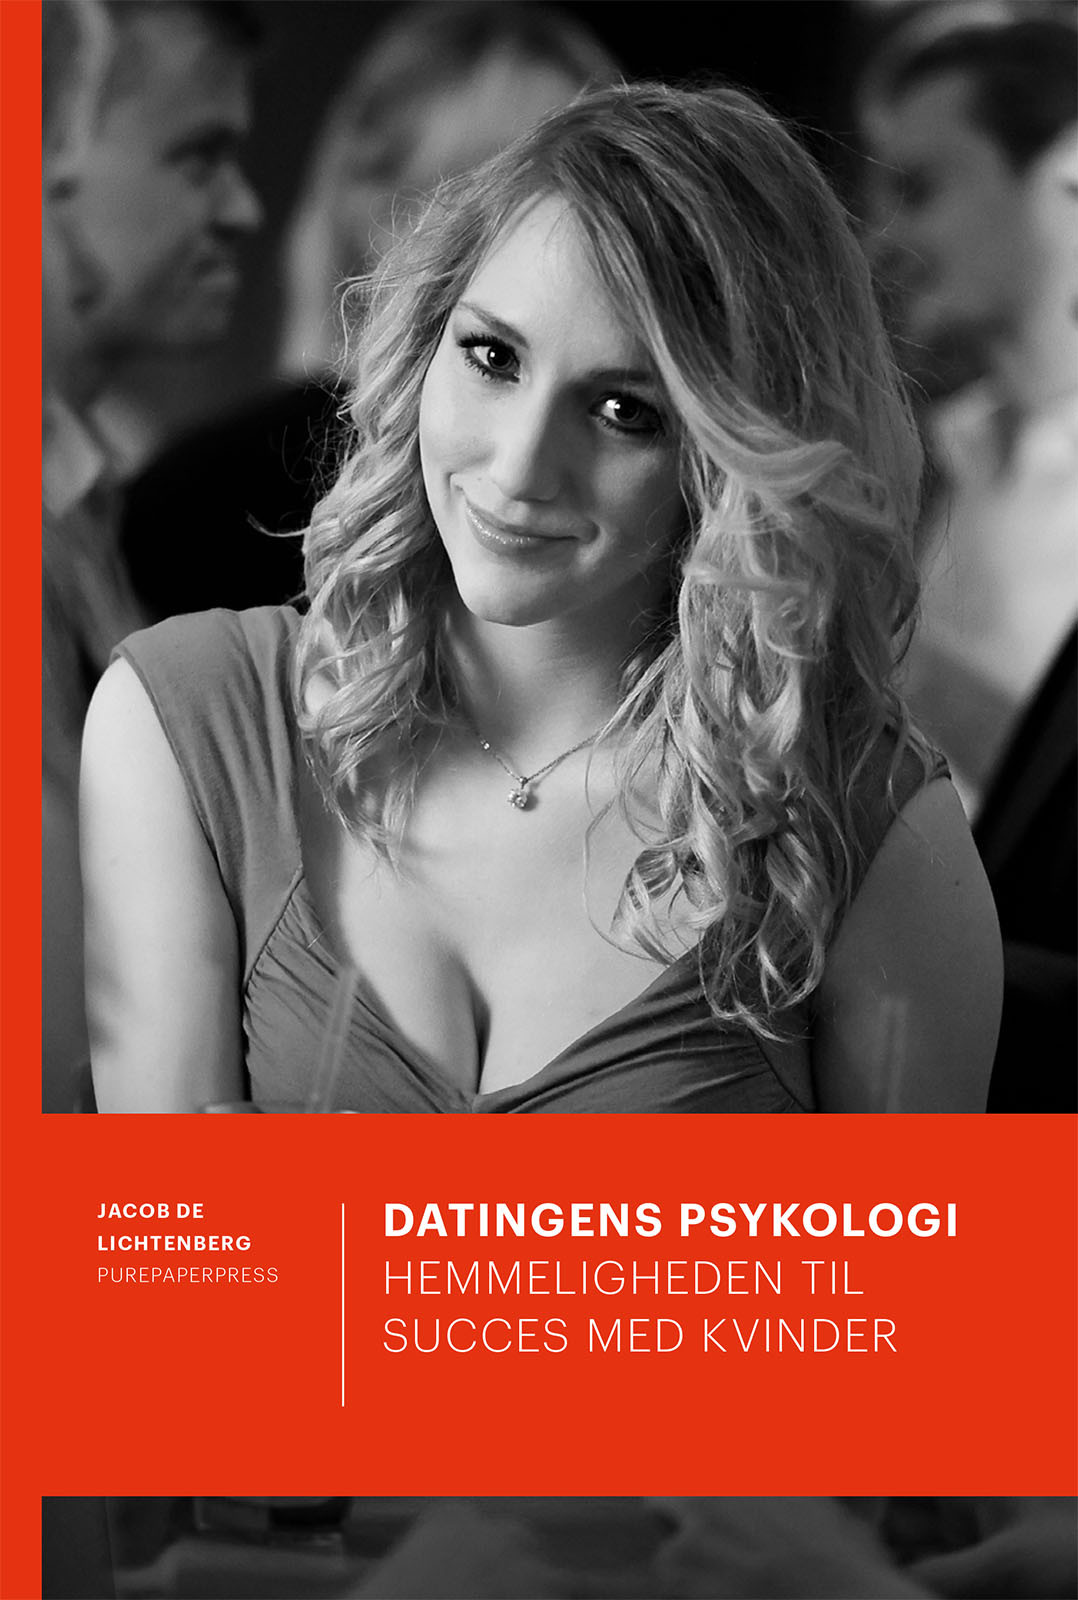 datingens psykologi